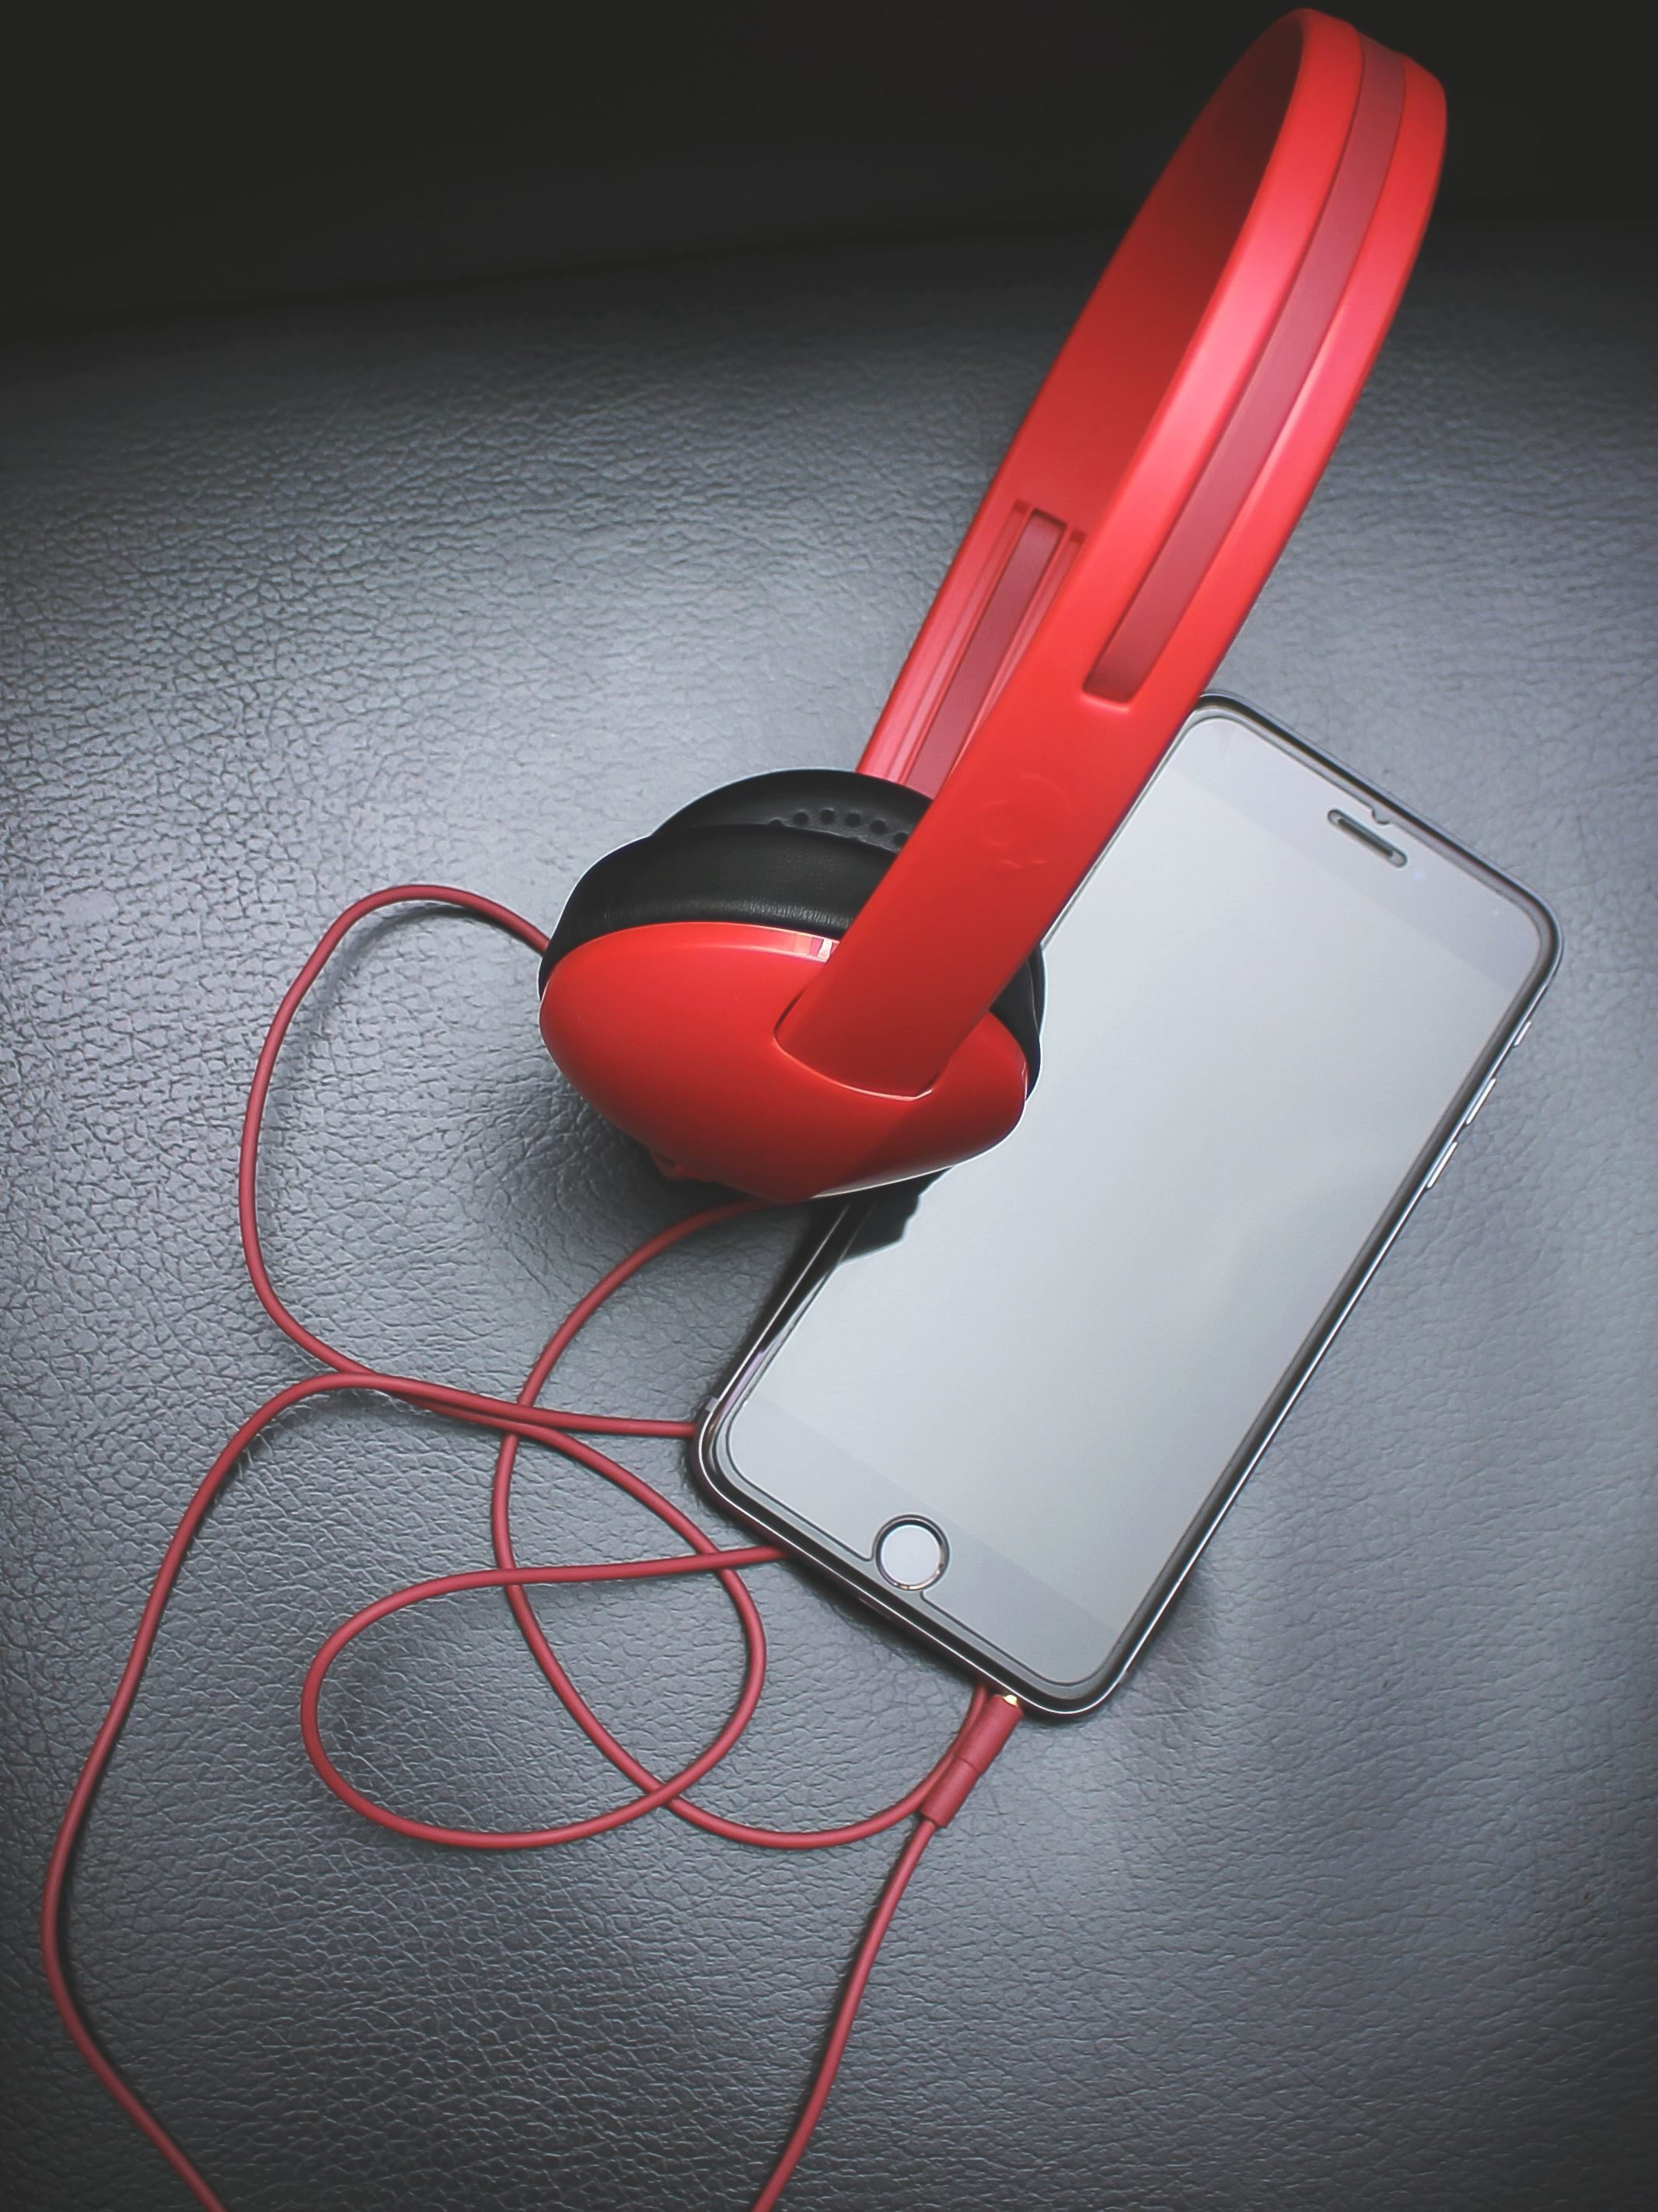 Free picture: smartphone, sound, technology, wire, cord, device ...